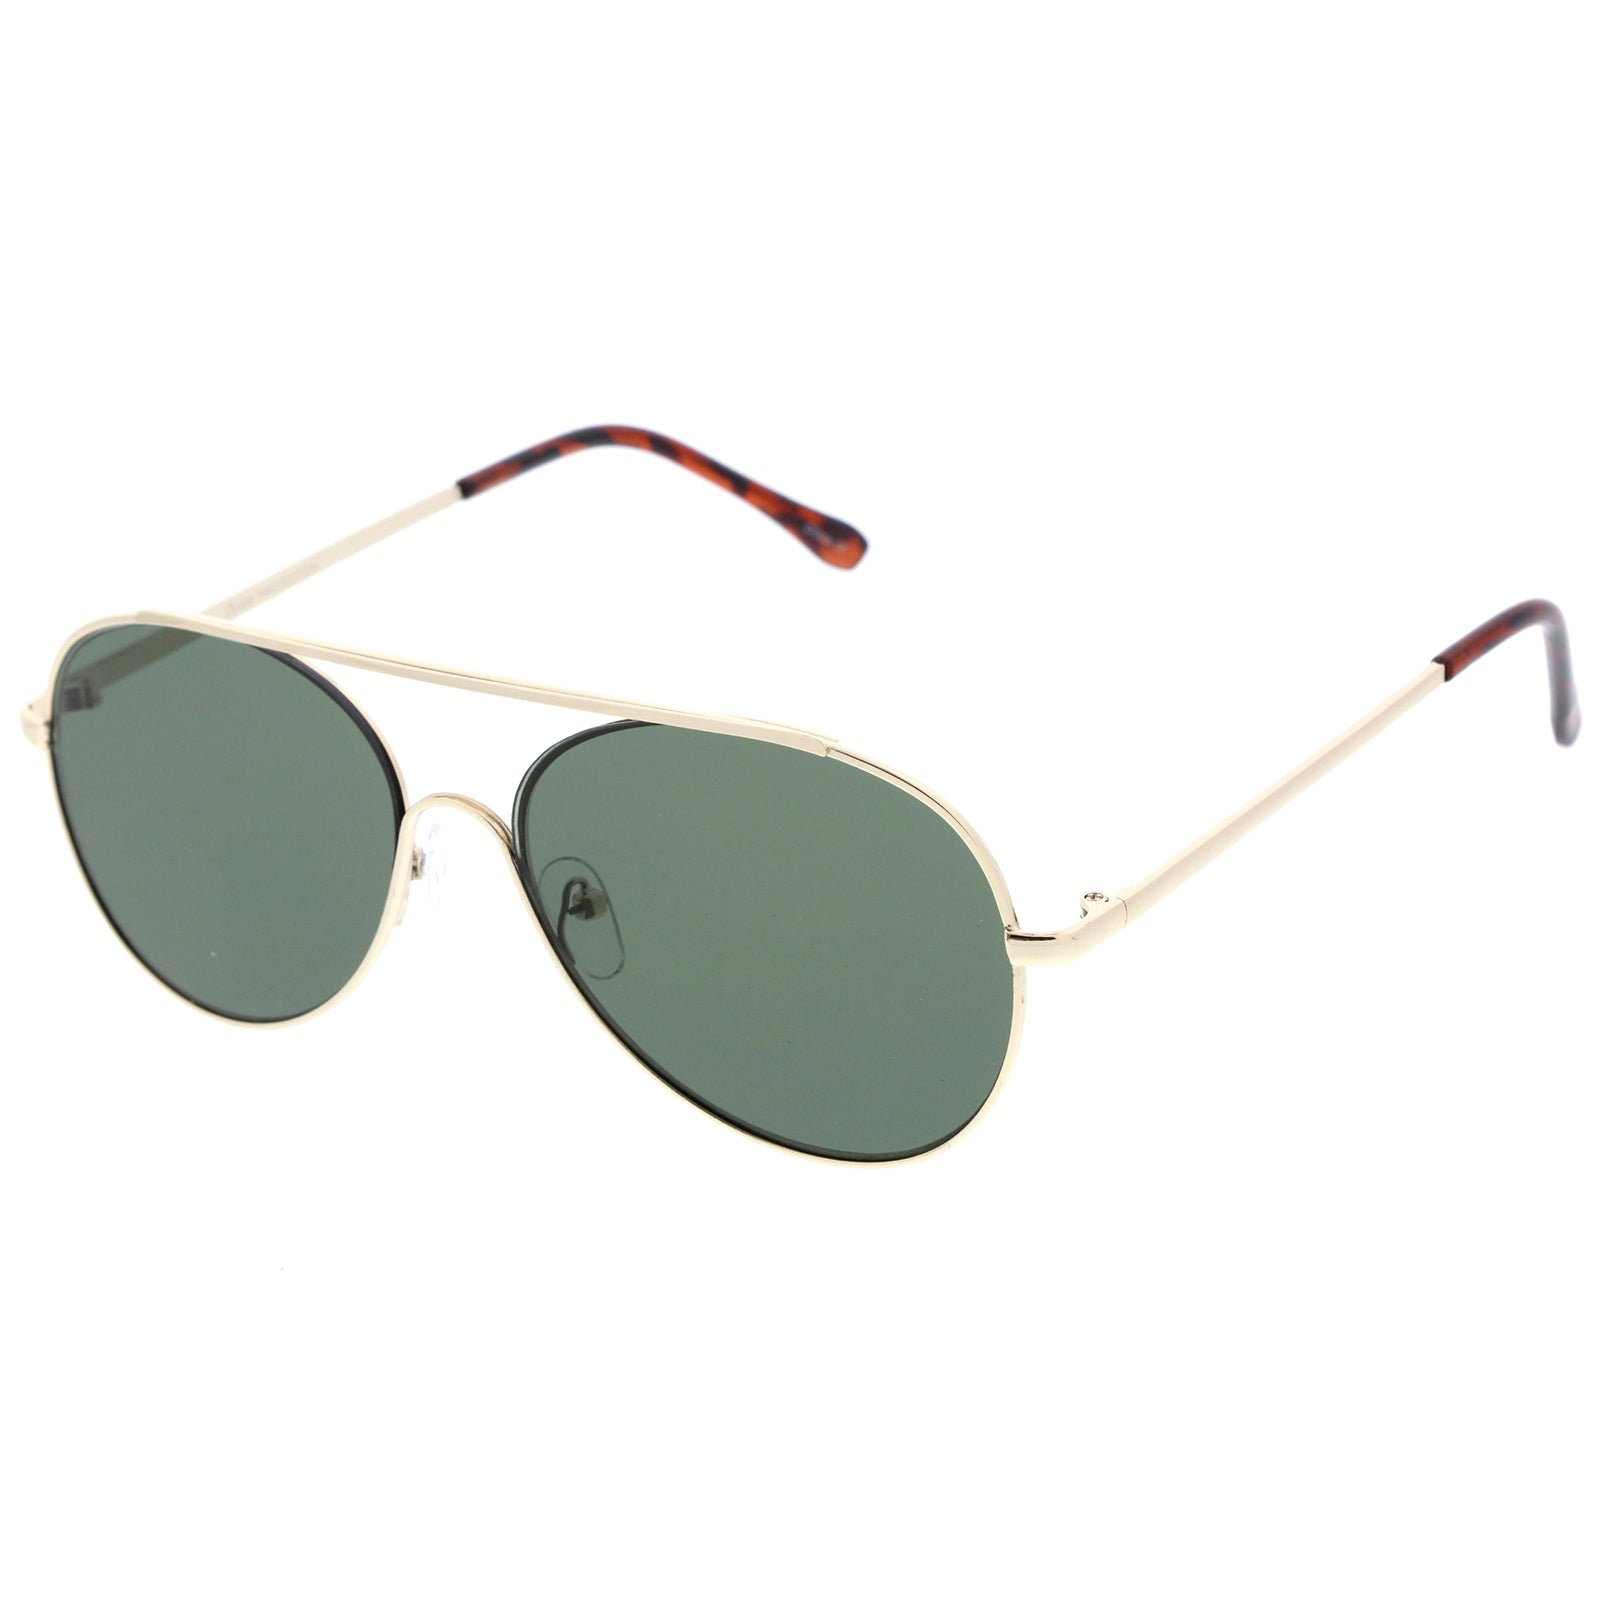 7d786280733 Classic Brow Bar Semi-Rimless Lens Aviator Sunglasses 57mm – sunglass.la